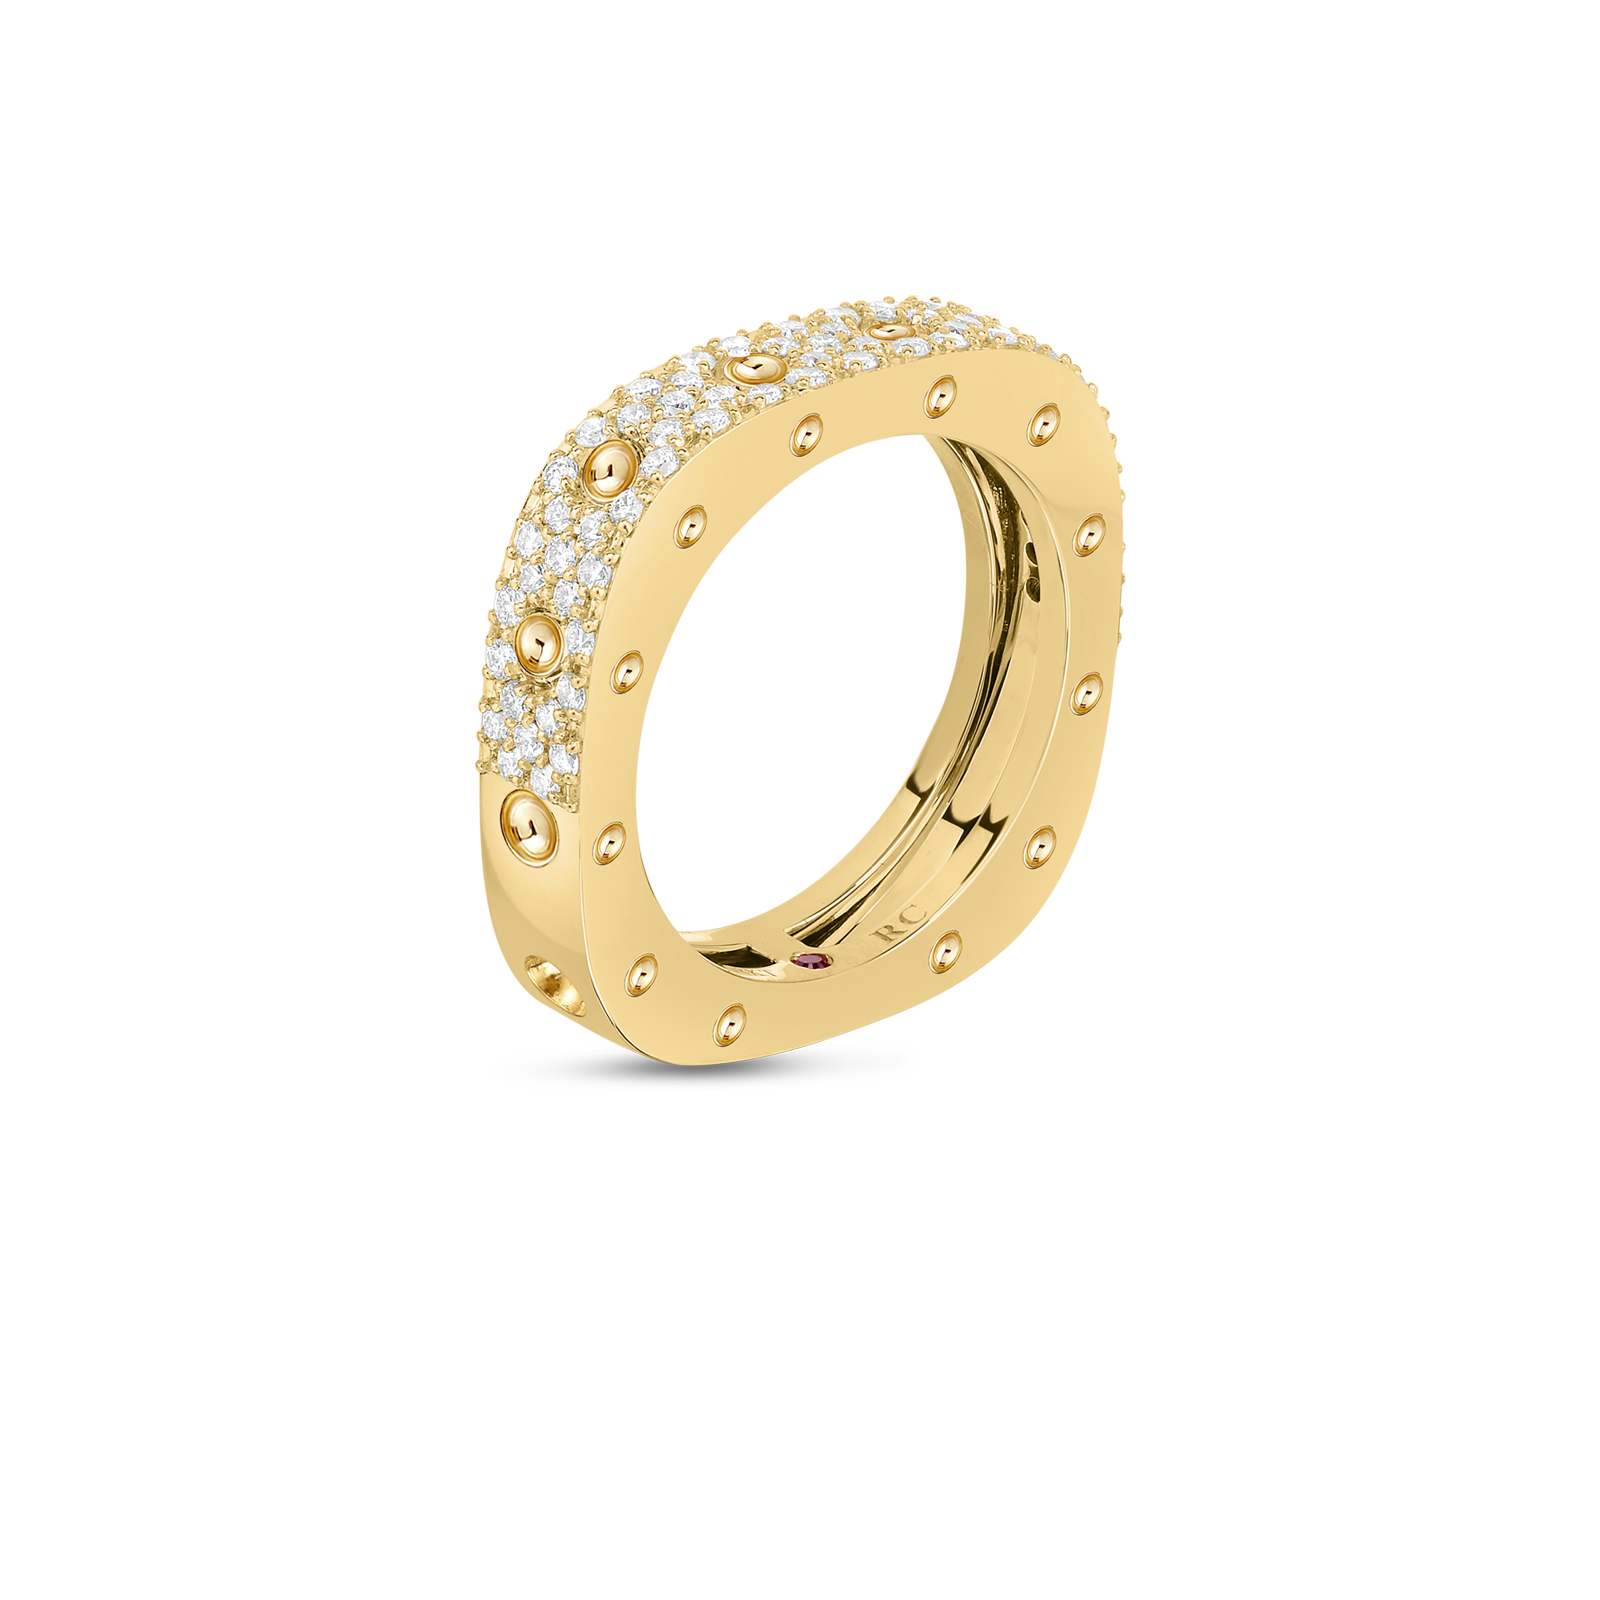 Roberto-Coin-Pois-Moi-18K-Yellow-Gold-1-Row-Square-Ring-with-Diamonds-888703AY55X0_SIDE